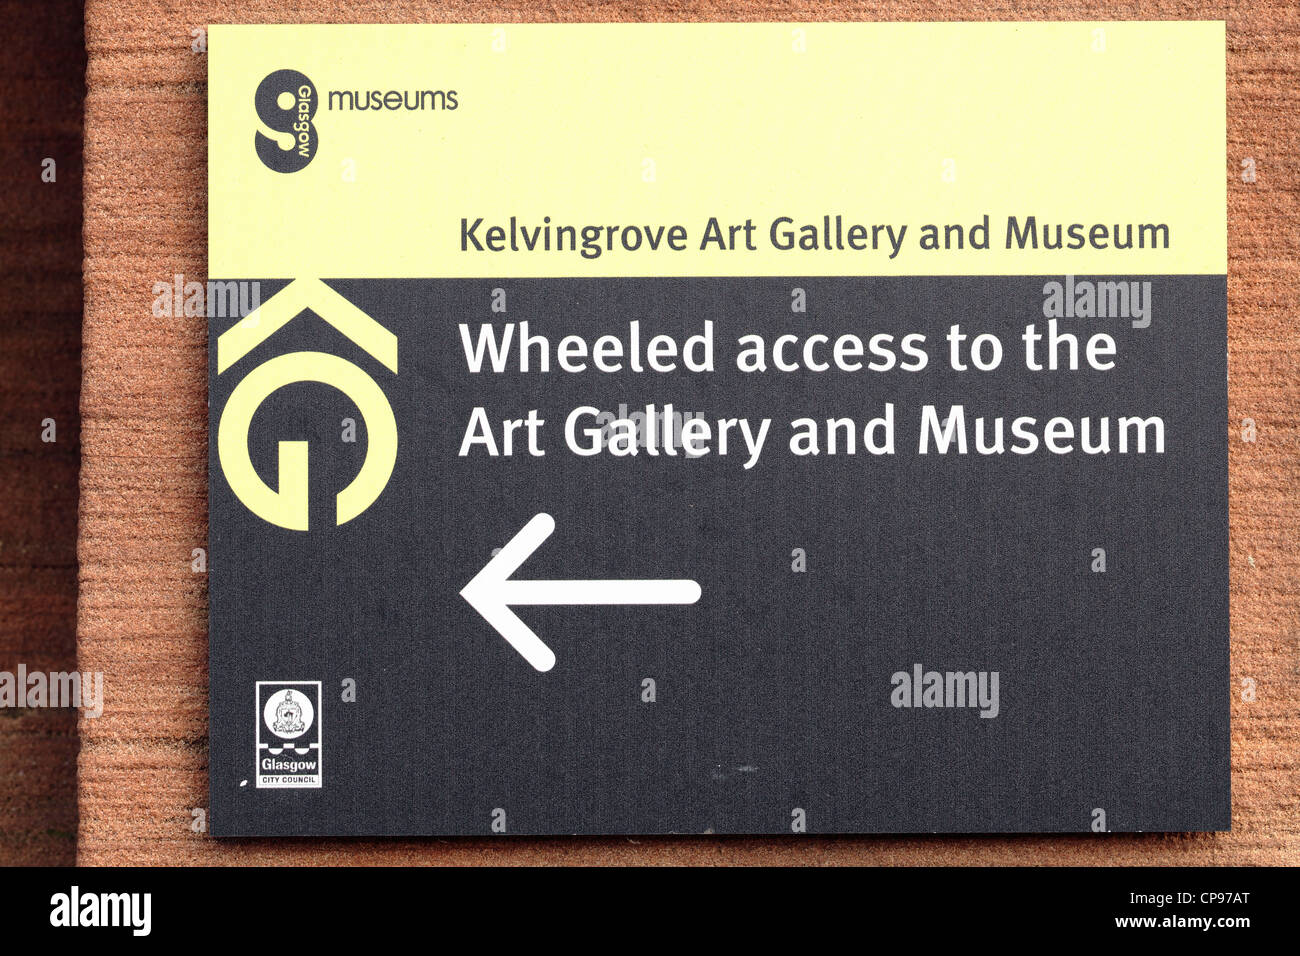 Direction sign for wheeled access to Kelvingrove Art Gallery and Museum in Glasgow Scotland UK - Stock Image